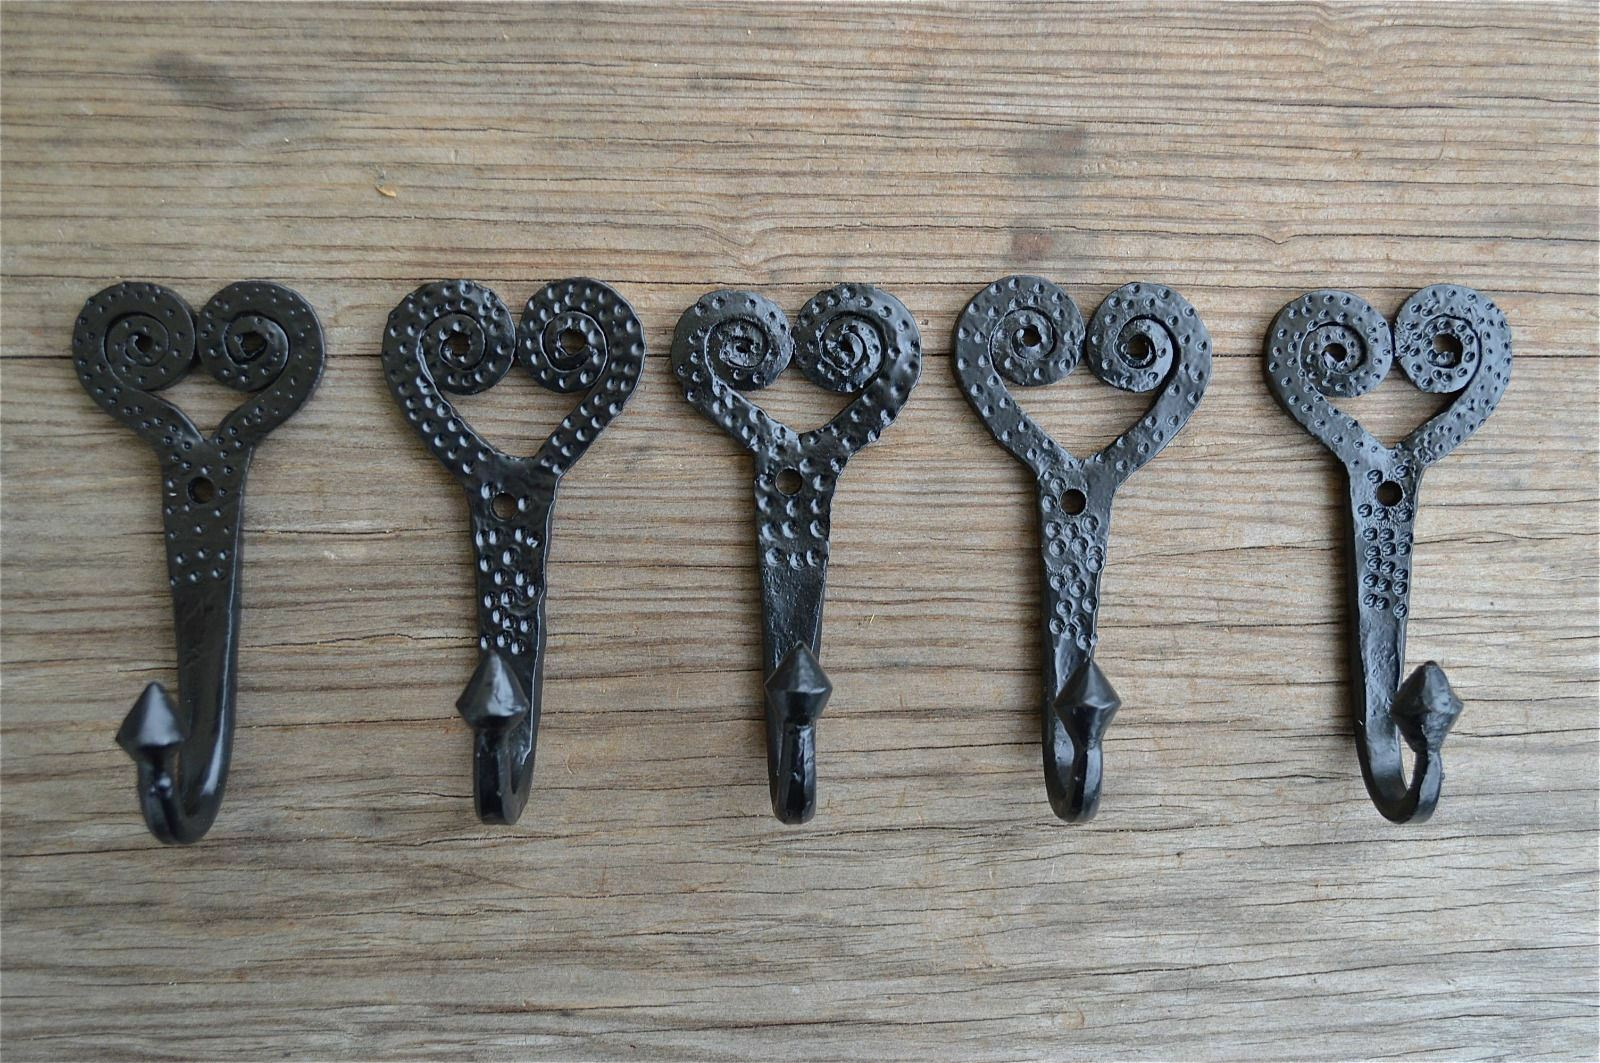 5 X Handmade Shaker Spiral Heart Wrought Iron Coat Hooks Hand Beaten Hook Y2